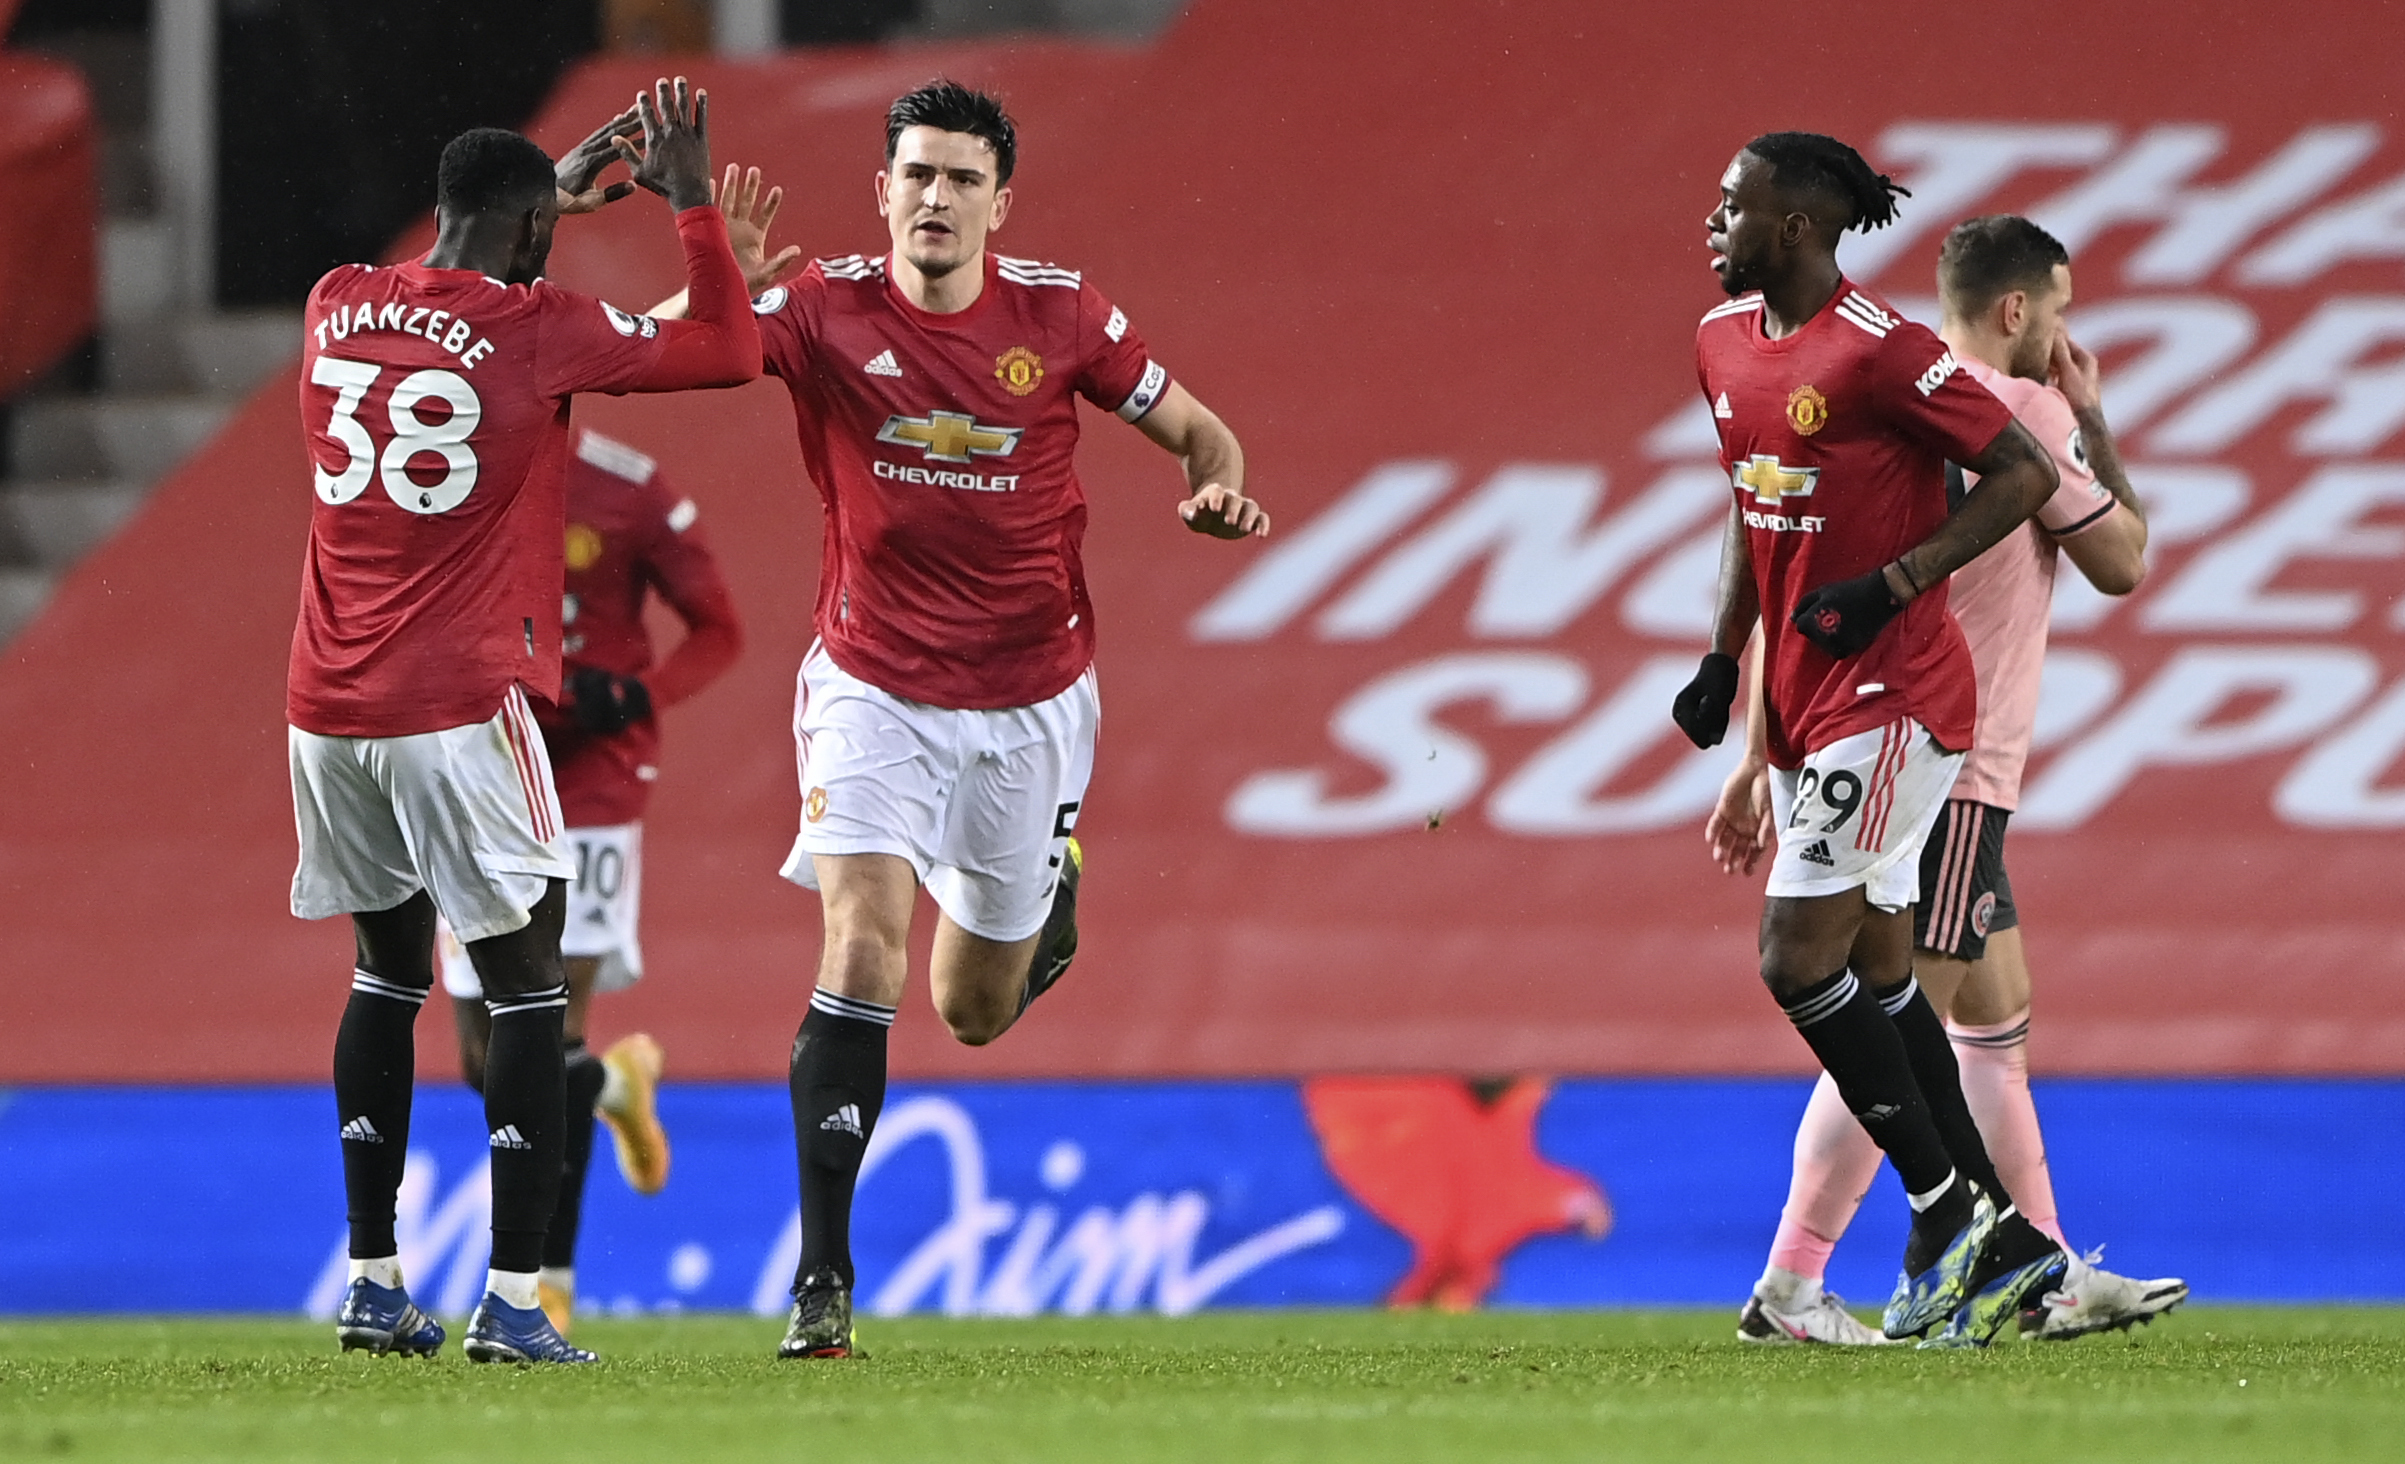 How To Watch Manchester United Vs Arsenal 1 30 2021 Live Stream Tv Schedule For Premier League Matchday 21 Syracuse Com